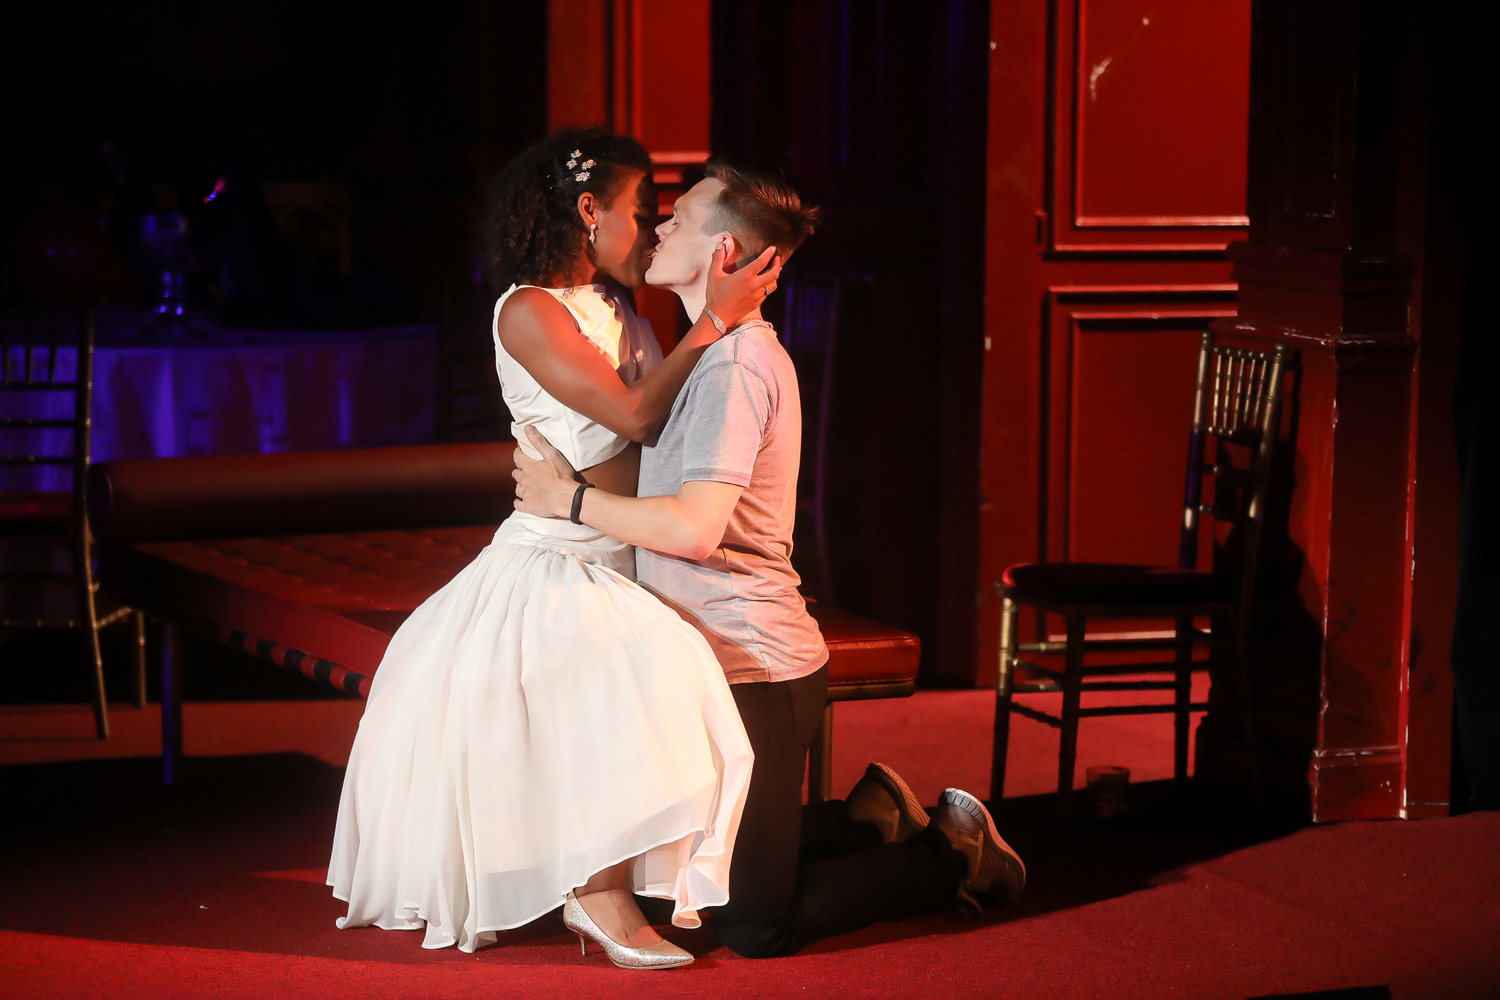 BWW Review: ROMEO & JULIET at Shakespeare Theatre Company